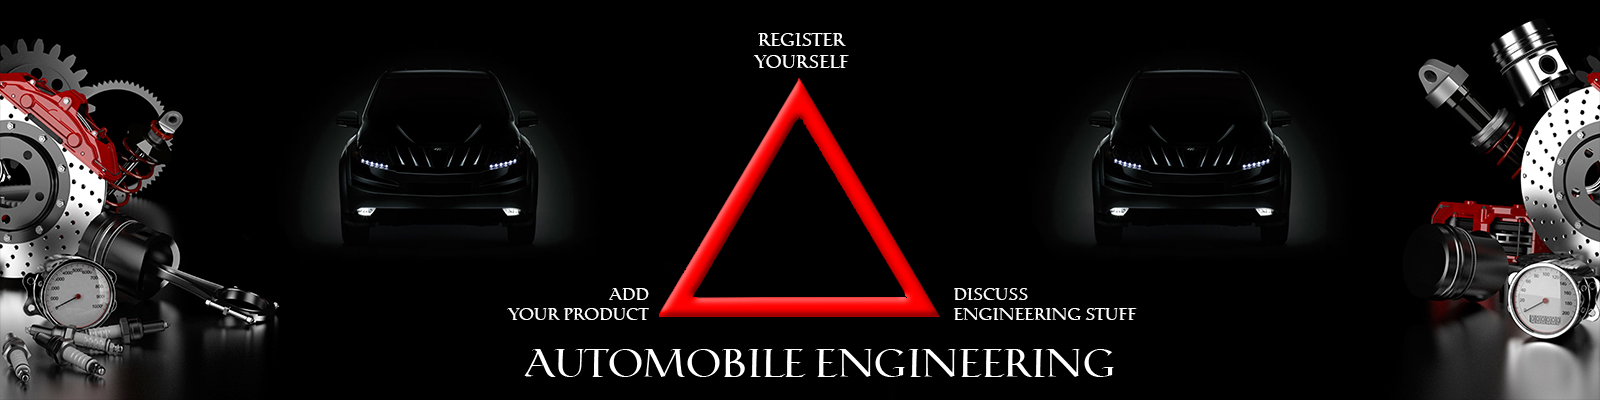 Scope of automobile engineering in India - Engineers Chaupal